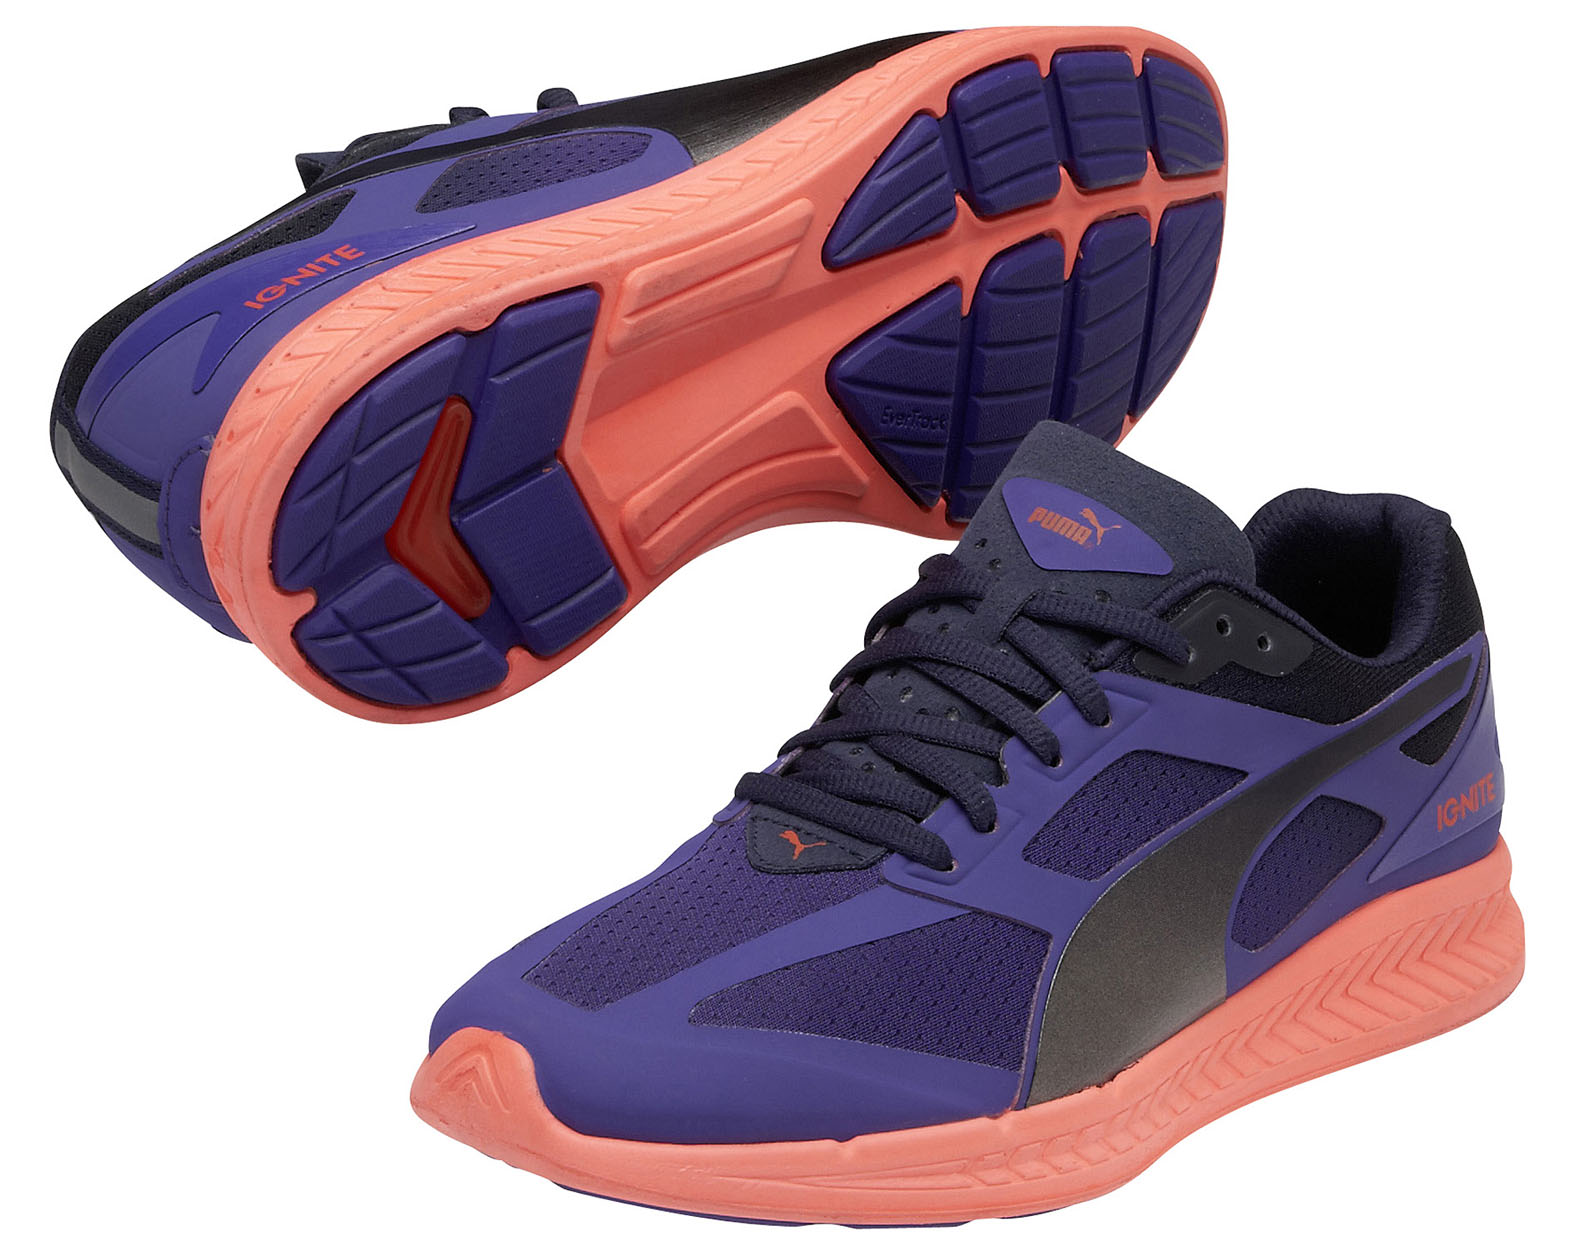 Puma Running Range Released Their Brand Ignite New cFJTK15u3l